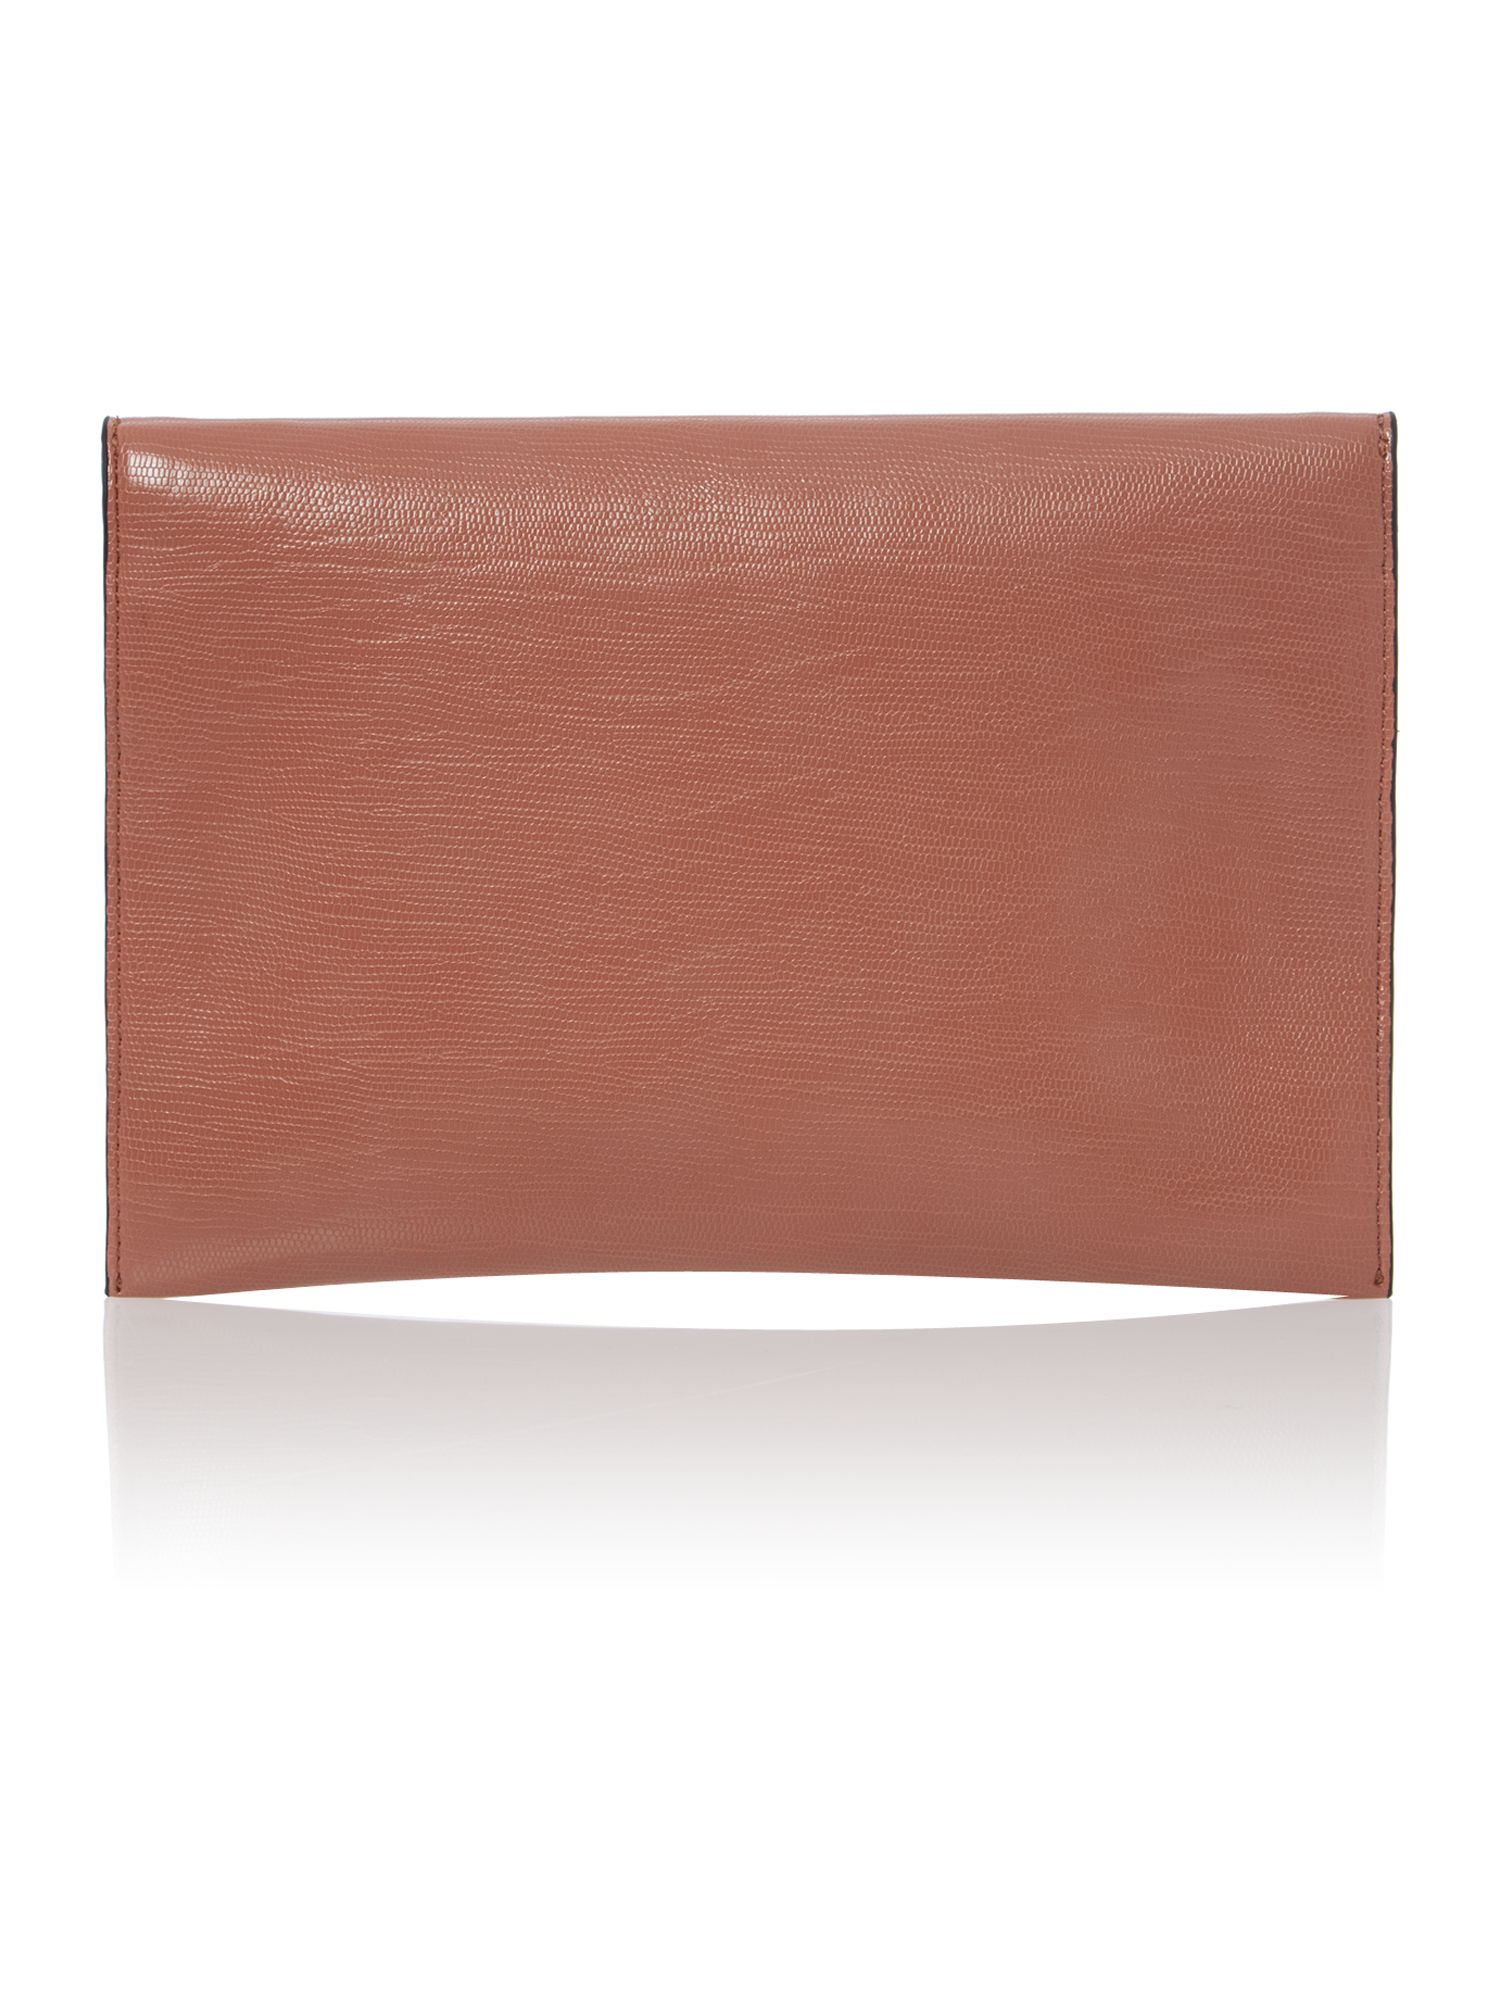 Pink envelope clutch with chain strap